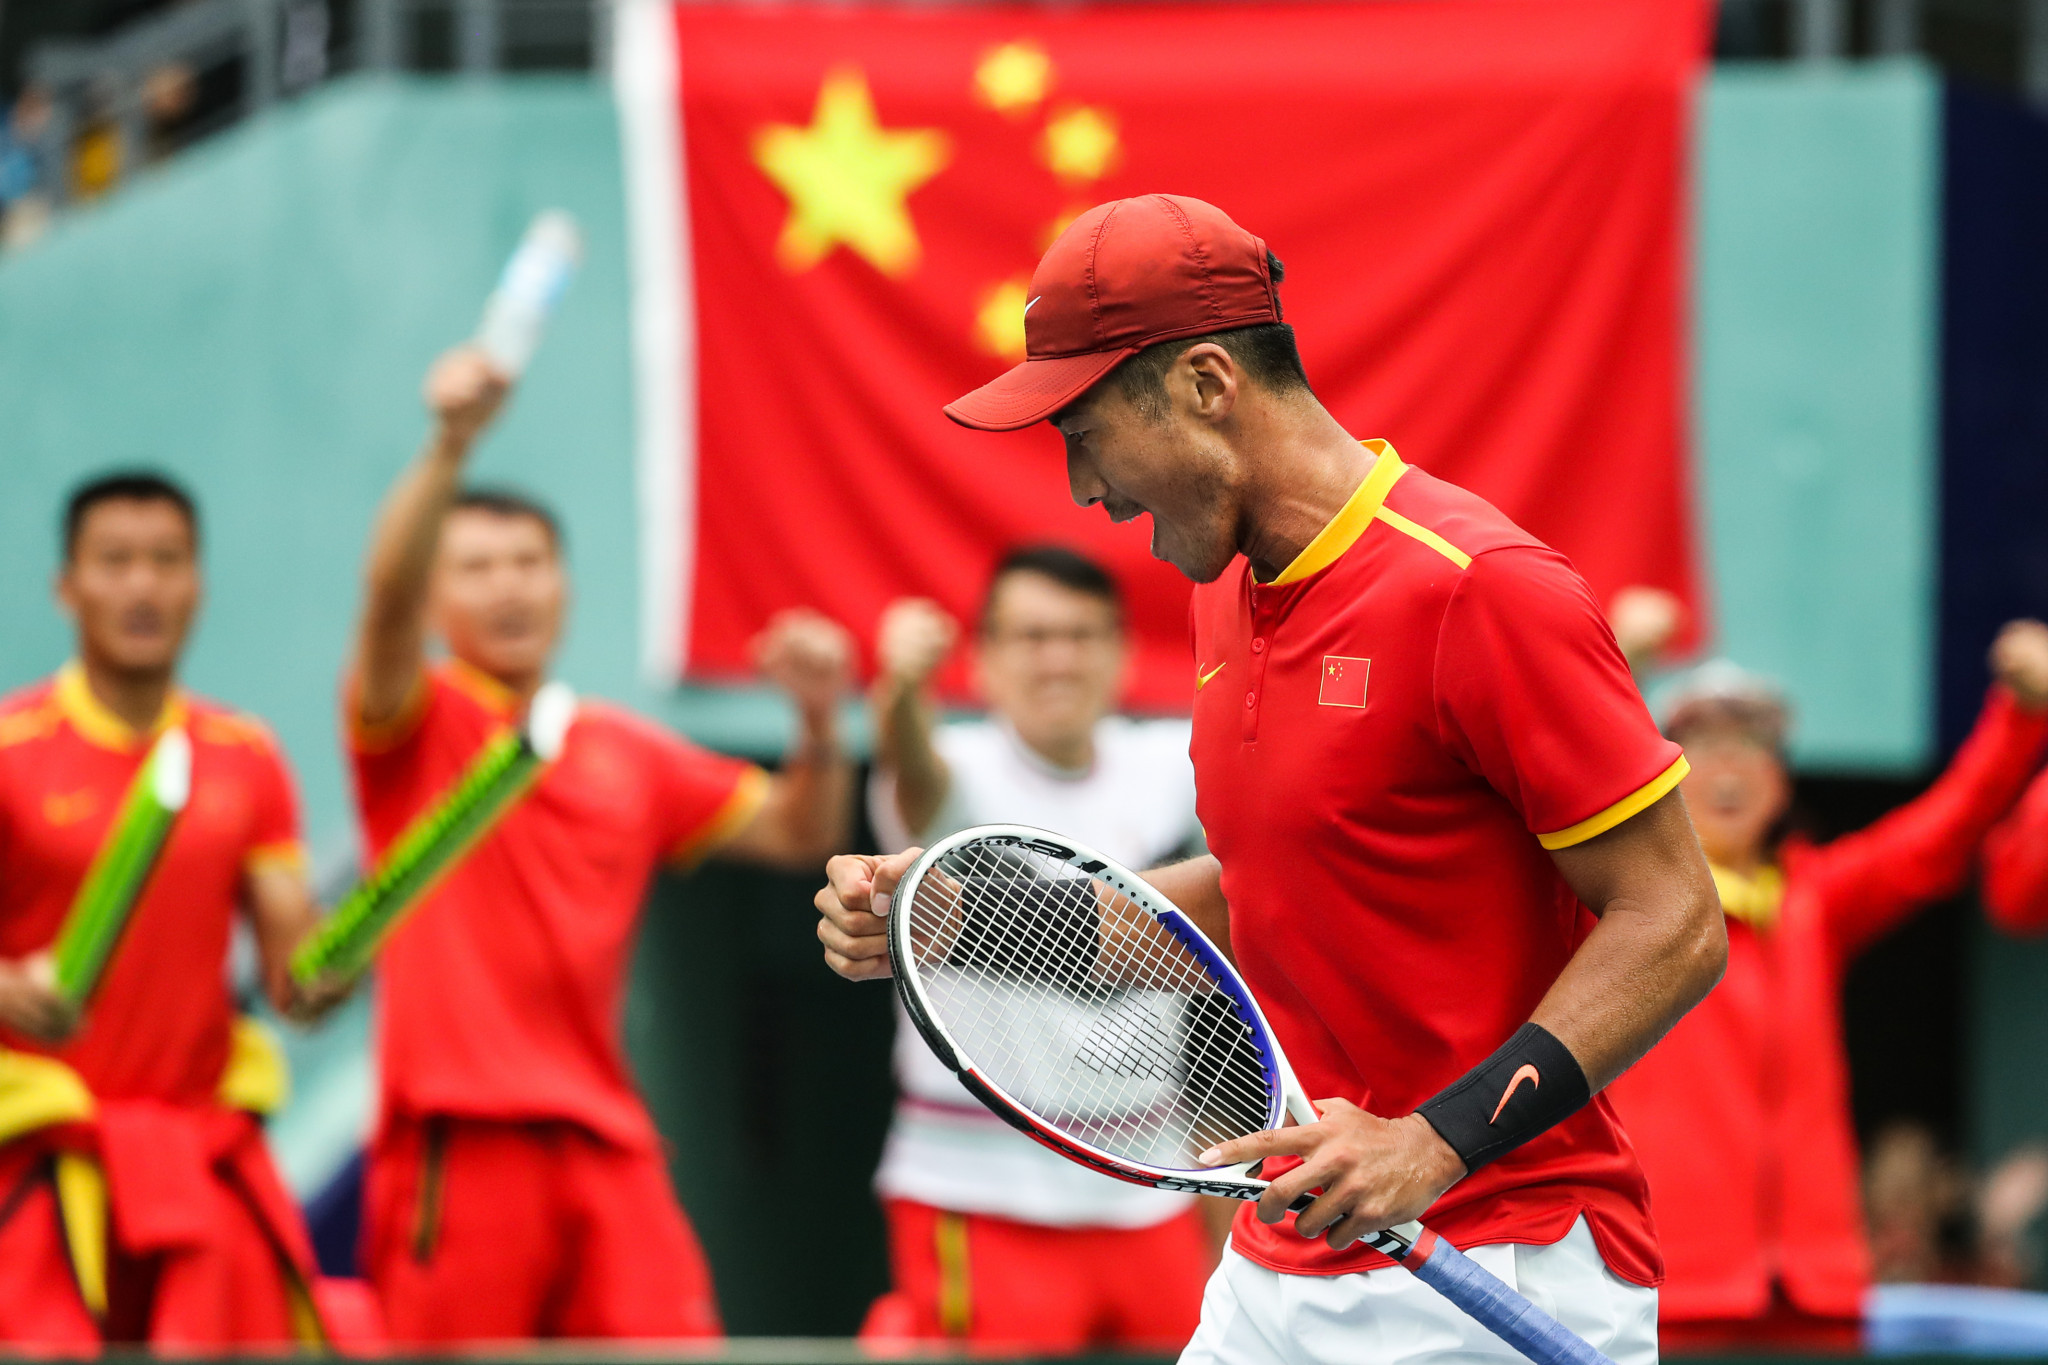 Romania advance to Davis Cup World Group I after China withdraw over coronavirus